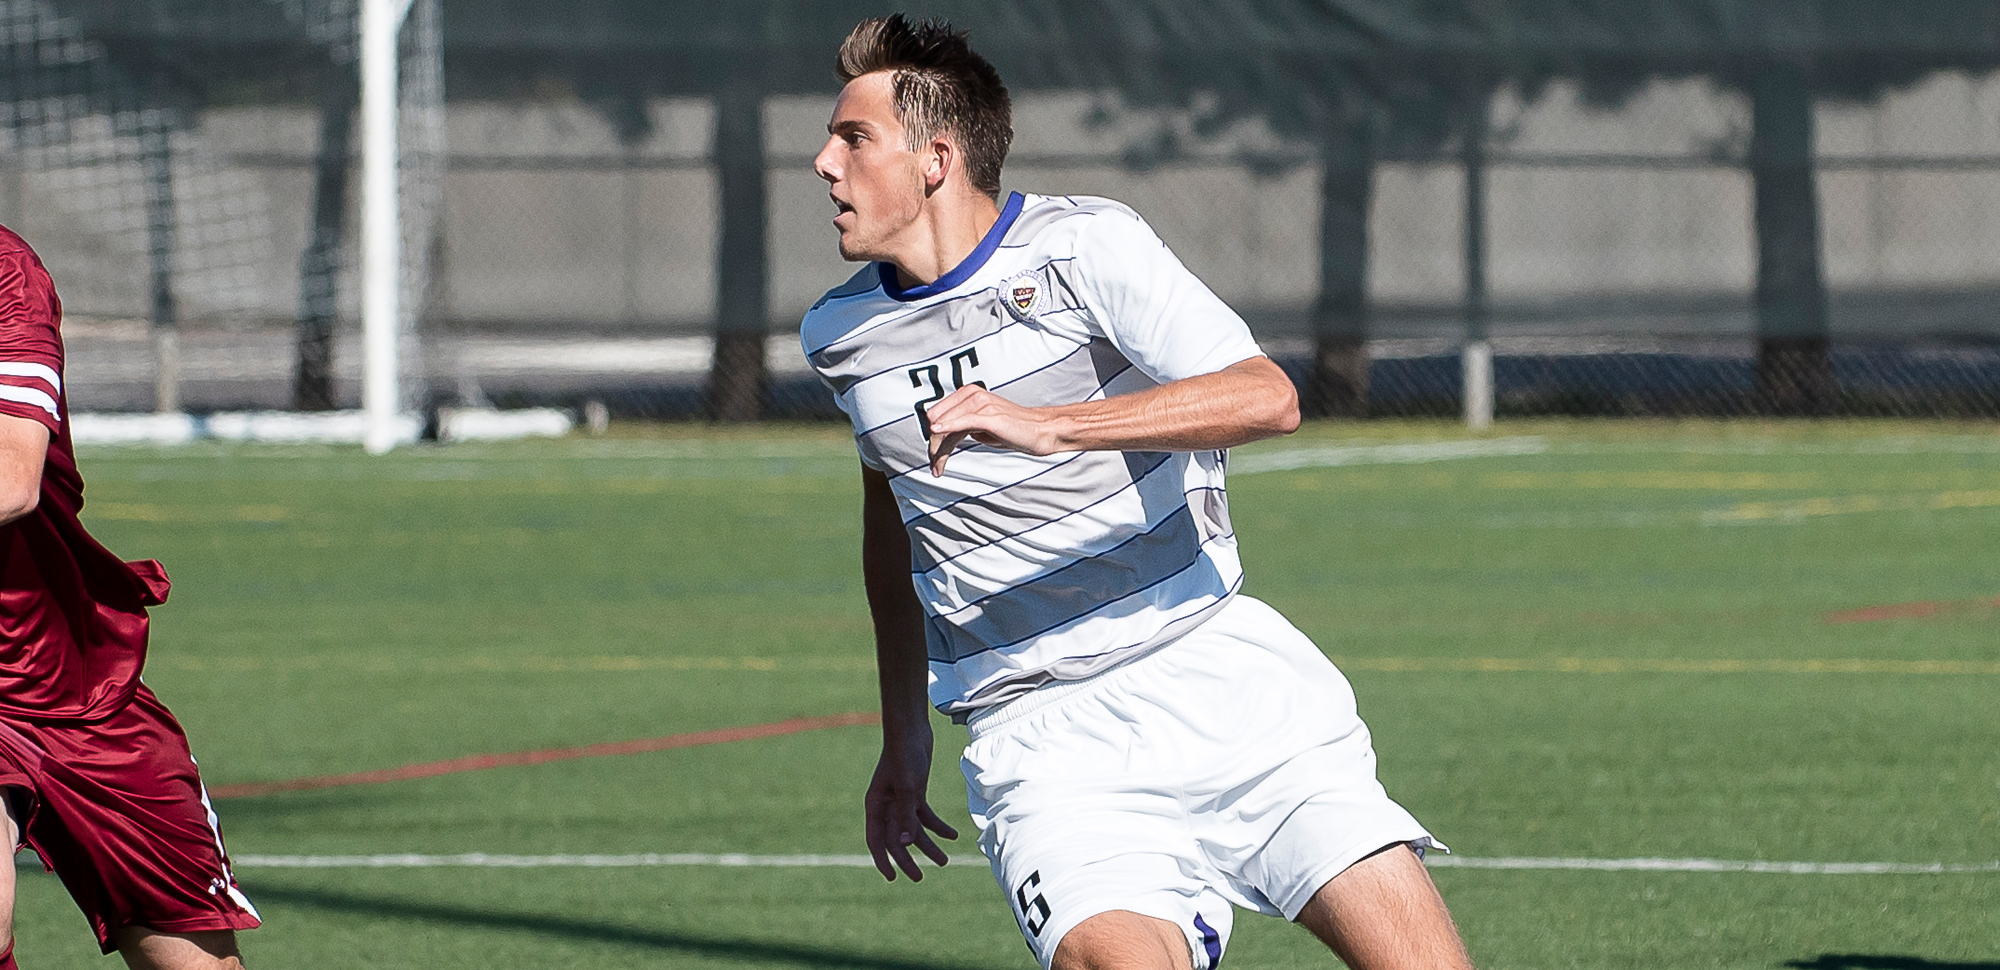 Junior Connor Casey scored in the second half, marking the fourth straight match in which we scored. But, it wasn't enough in Scranton's tough 2-1 loss at SUNY-Cortland on Sunday night.